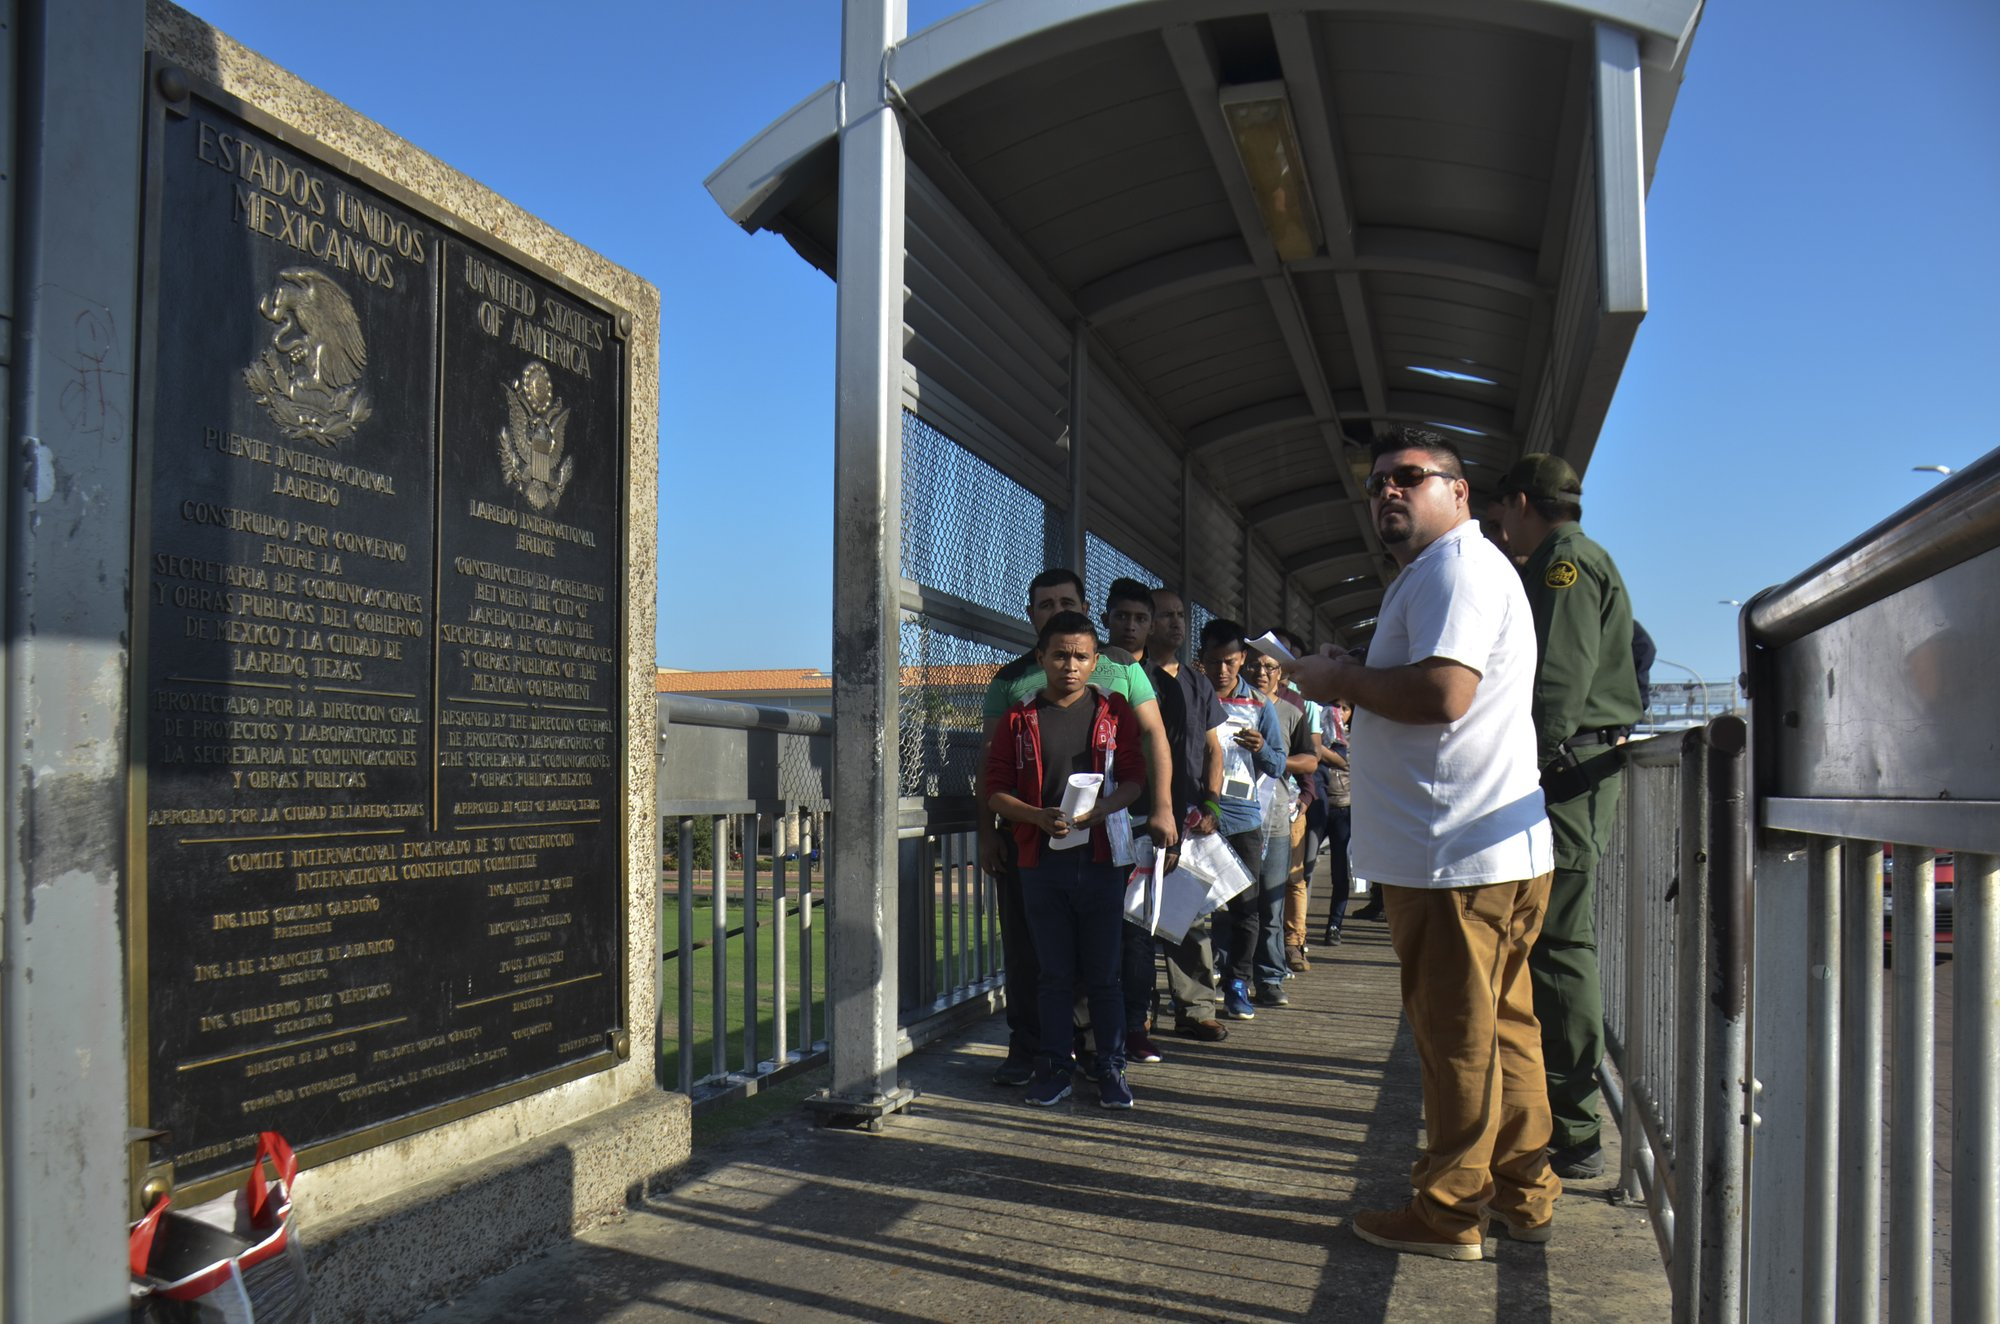 Tent courtrooms open to process migrants waiting in Mexico